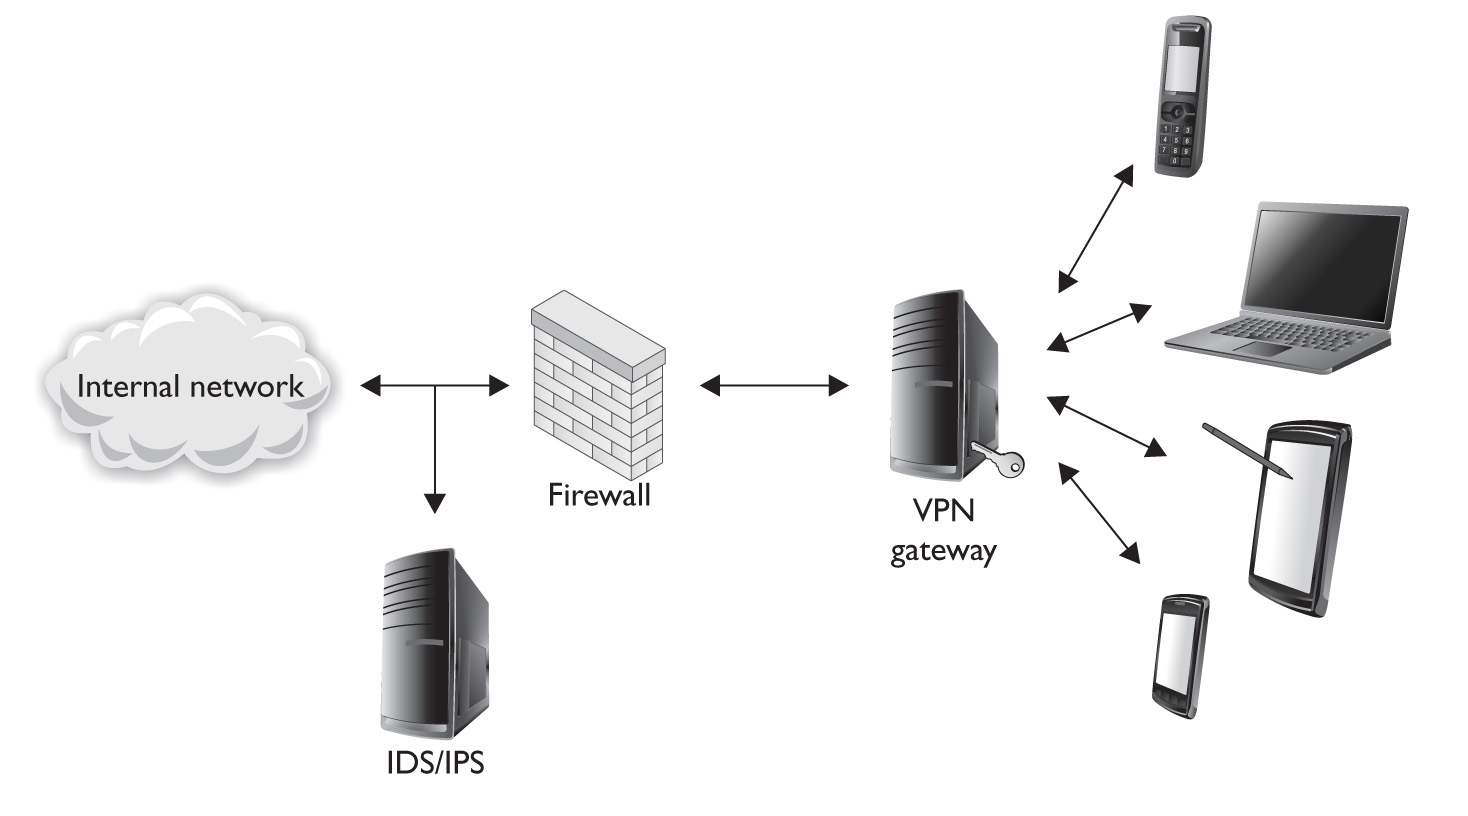 Advanced Home Network Design Network Infrastructure Design Viewing Gallery